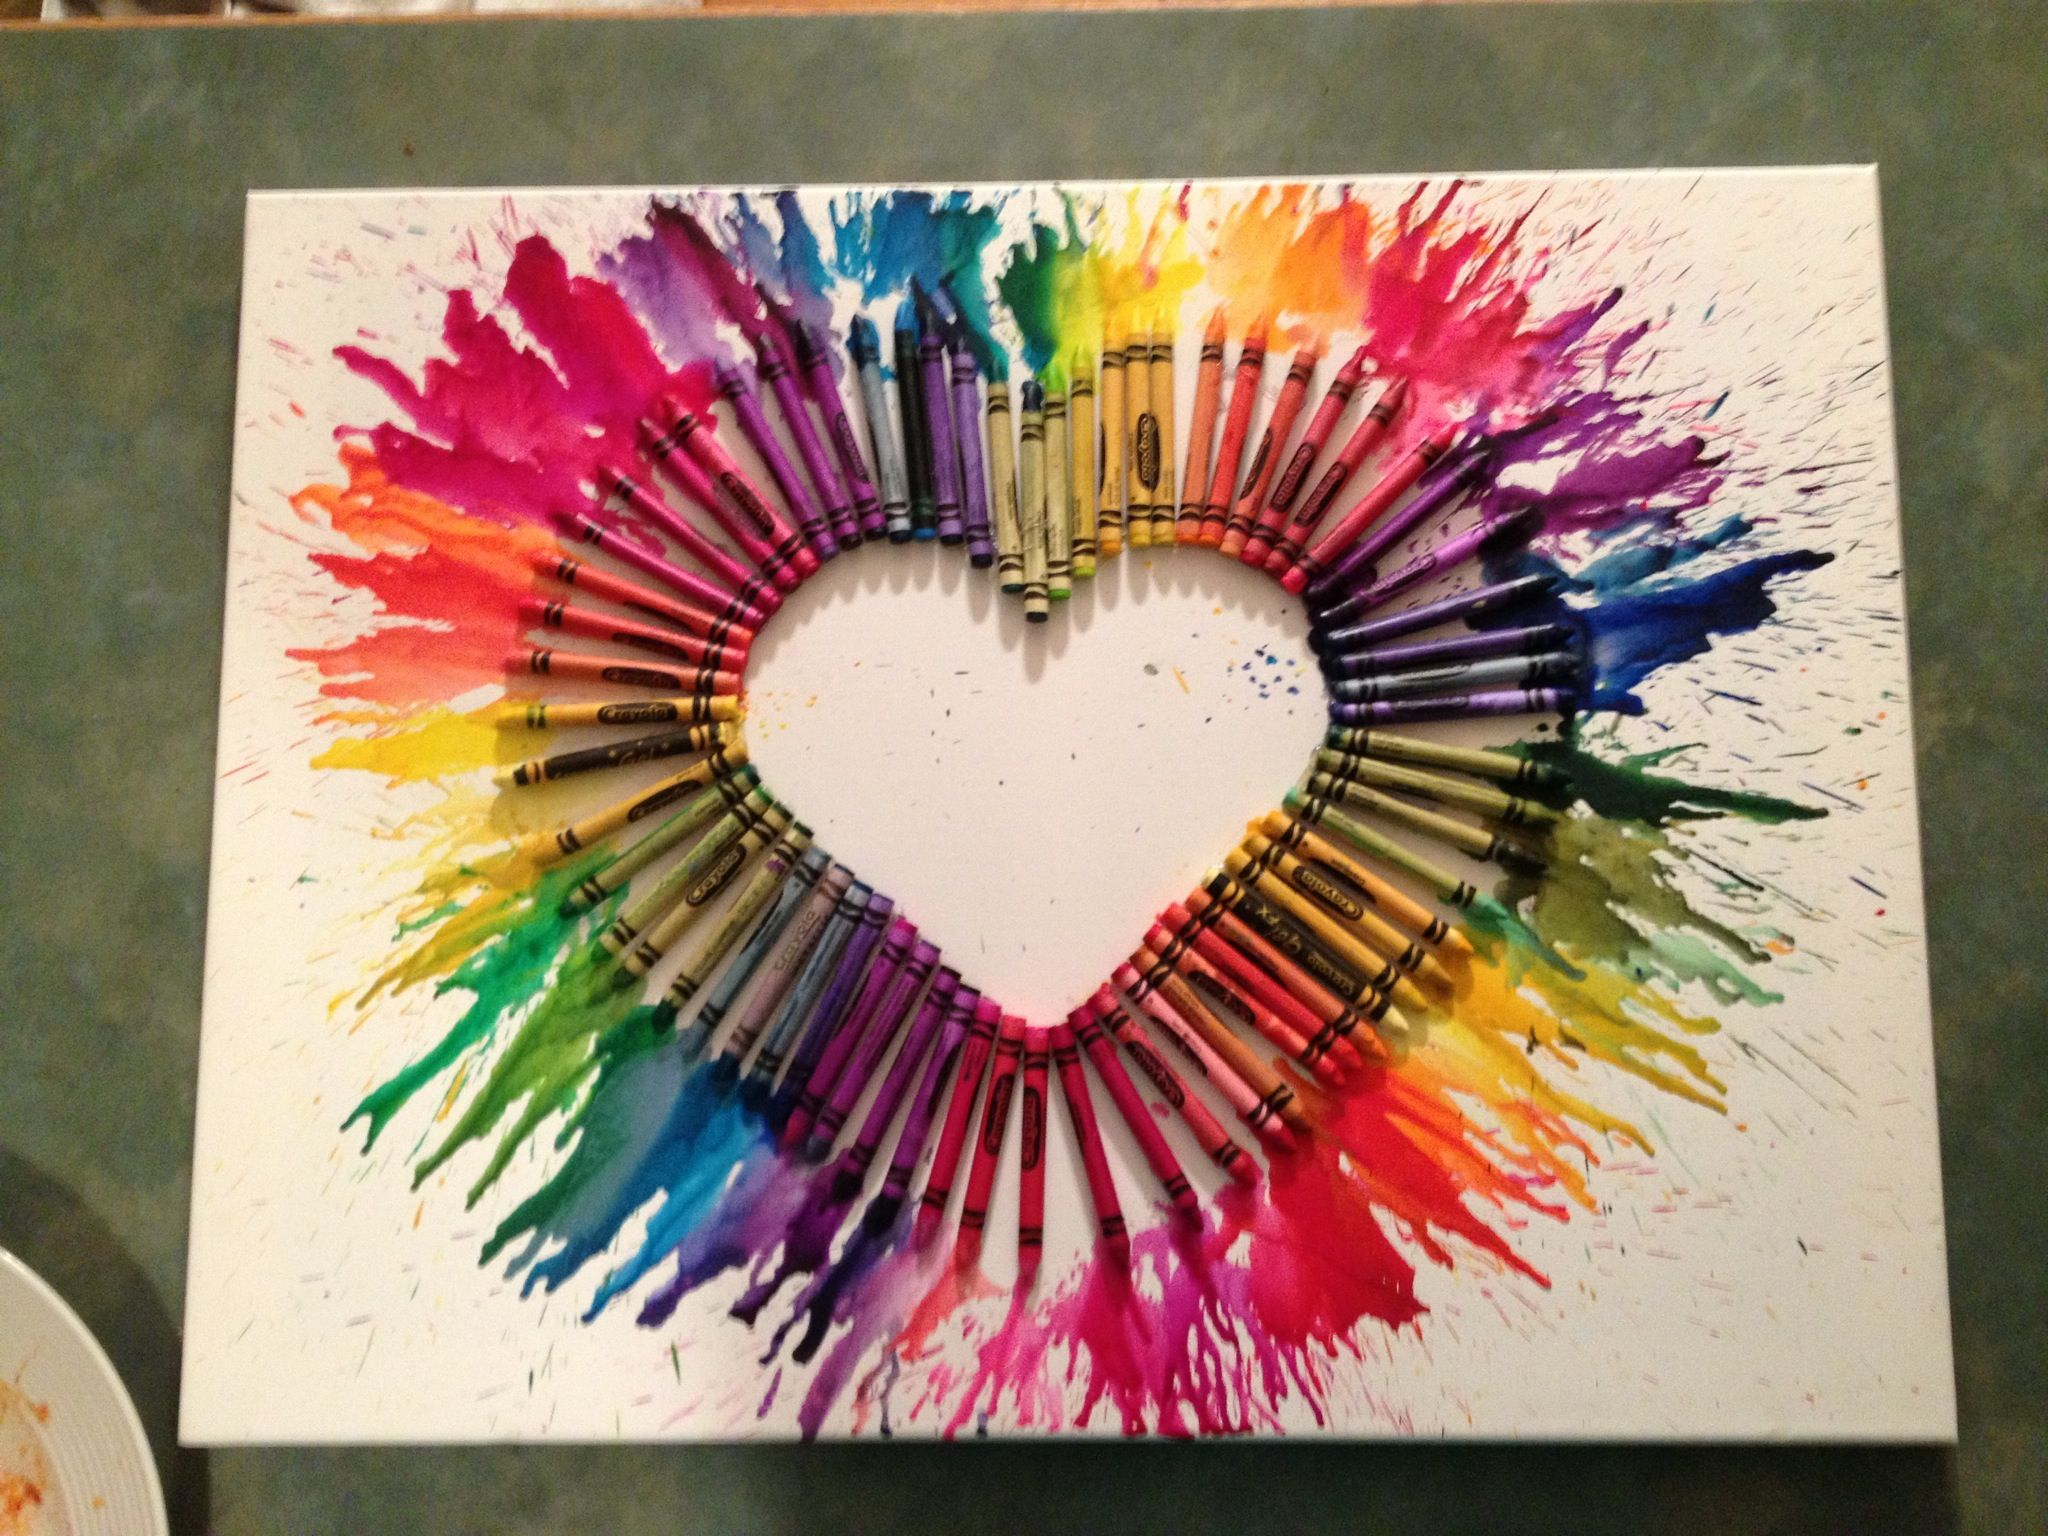 Crayon art arts and crafts project favorite crafts for Paper art projects